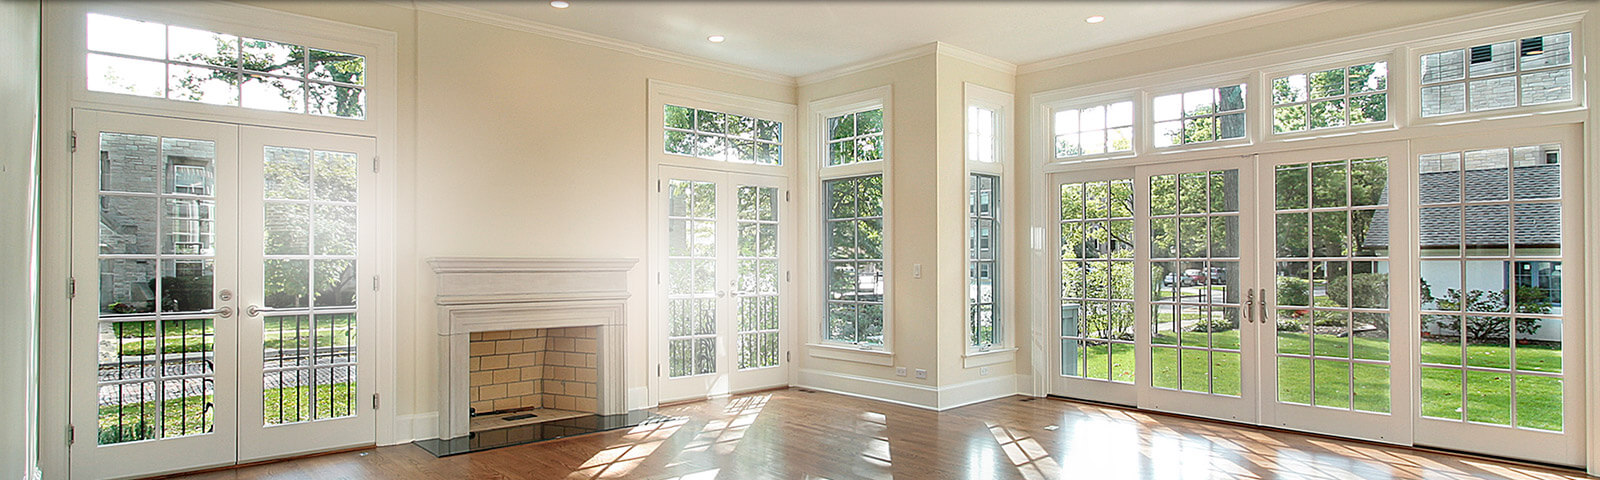 Advanced Window Products: Vinyl Window replacement specialists in Houston